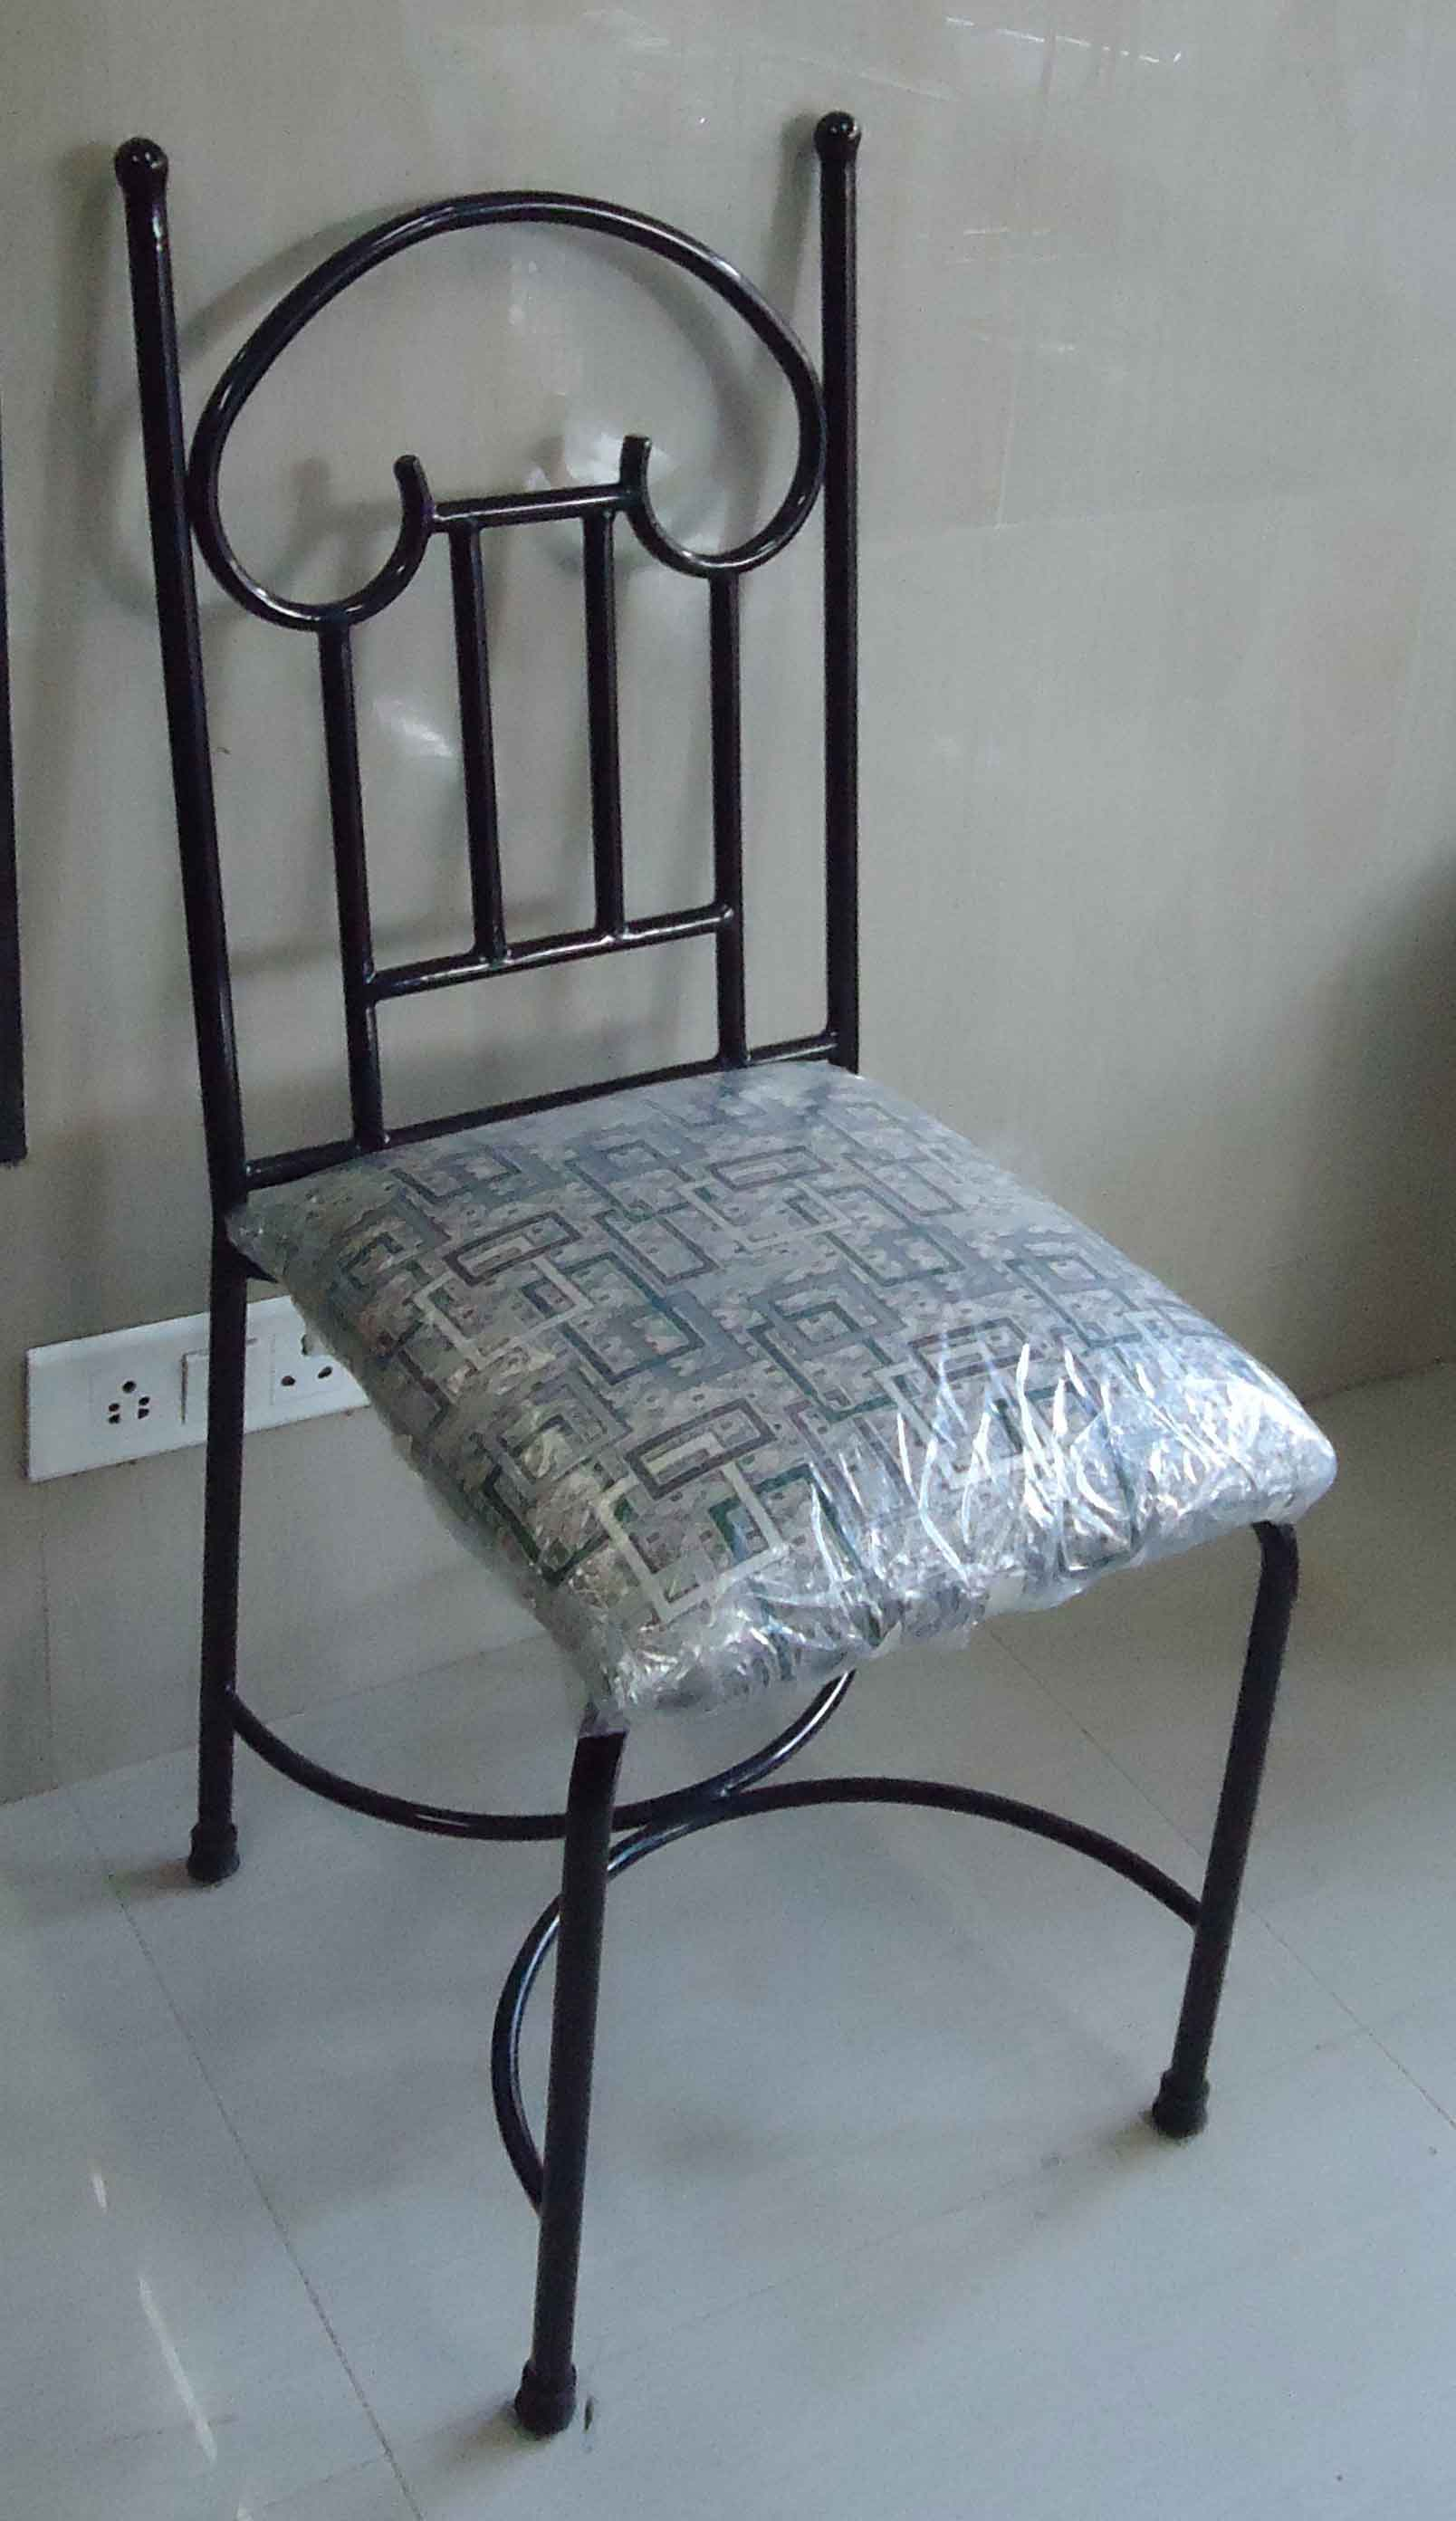 Dining Chairs : We are manufacturers of wrought iron furniture which includes , Dining sets , Double and single beds with and without storage , sofa cum beds , bunk beds , Sofa sets , swings etc . These are made in good quality wrought iron and are powder coated in colours of customers choice . We also make customized furniture as per the design and size requirements of the customer